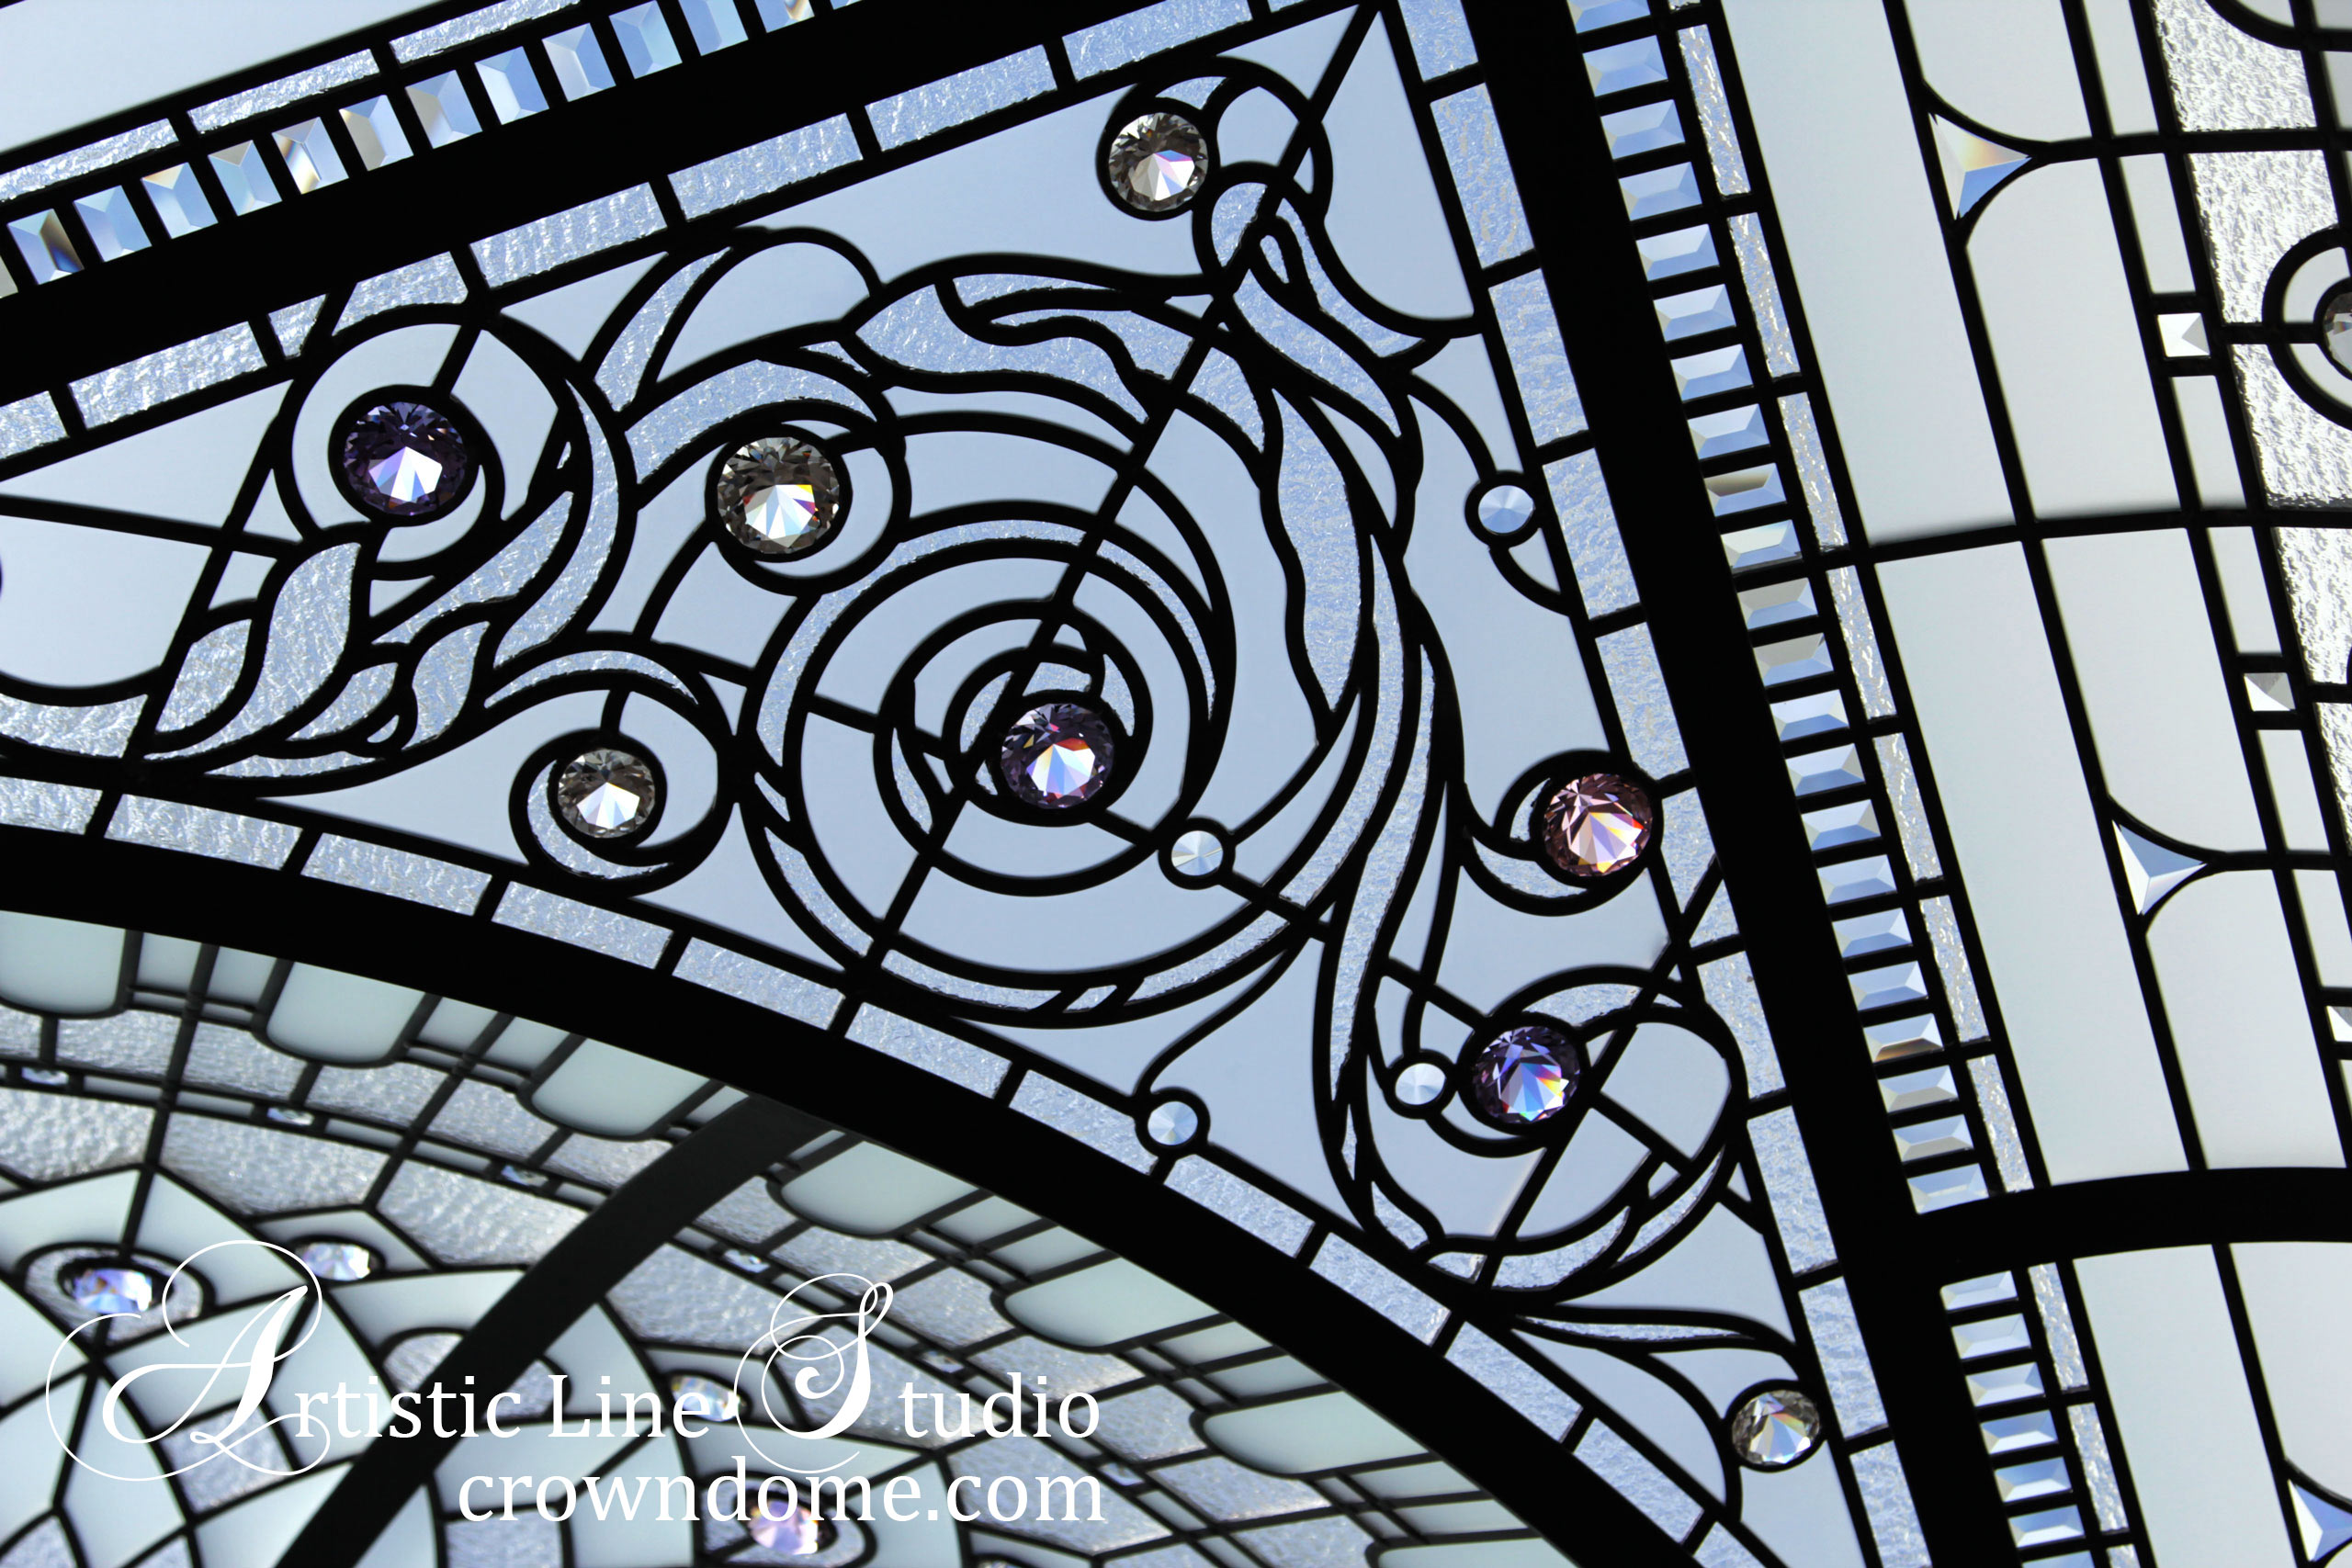 Leaded glass dome intricate design for a glass skylight ceiling with ornamental glass elements. Architectural masterpiece. Architectural art glass for a custom built house